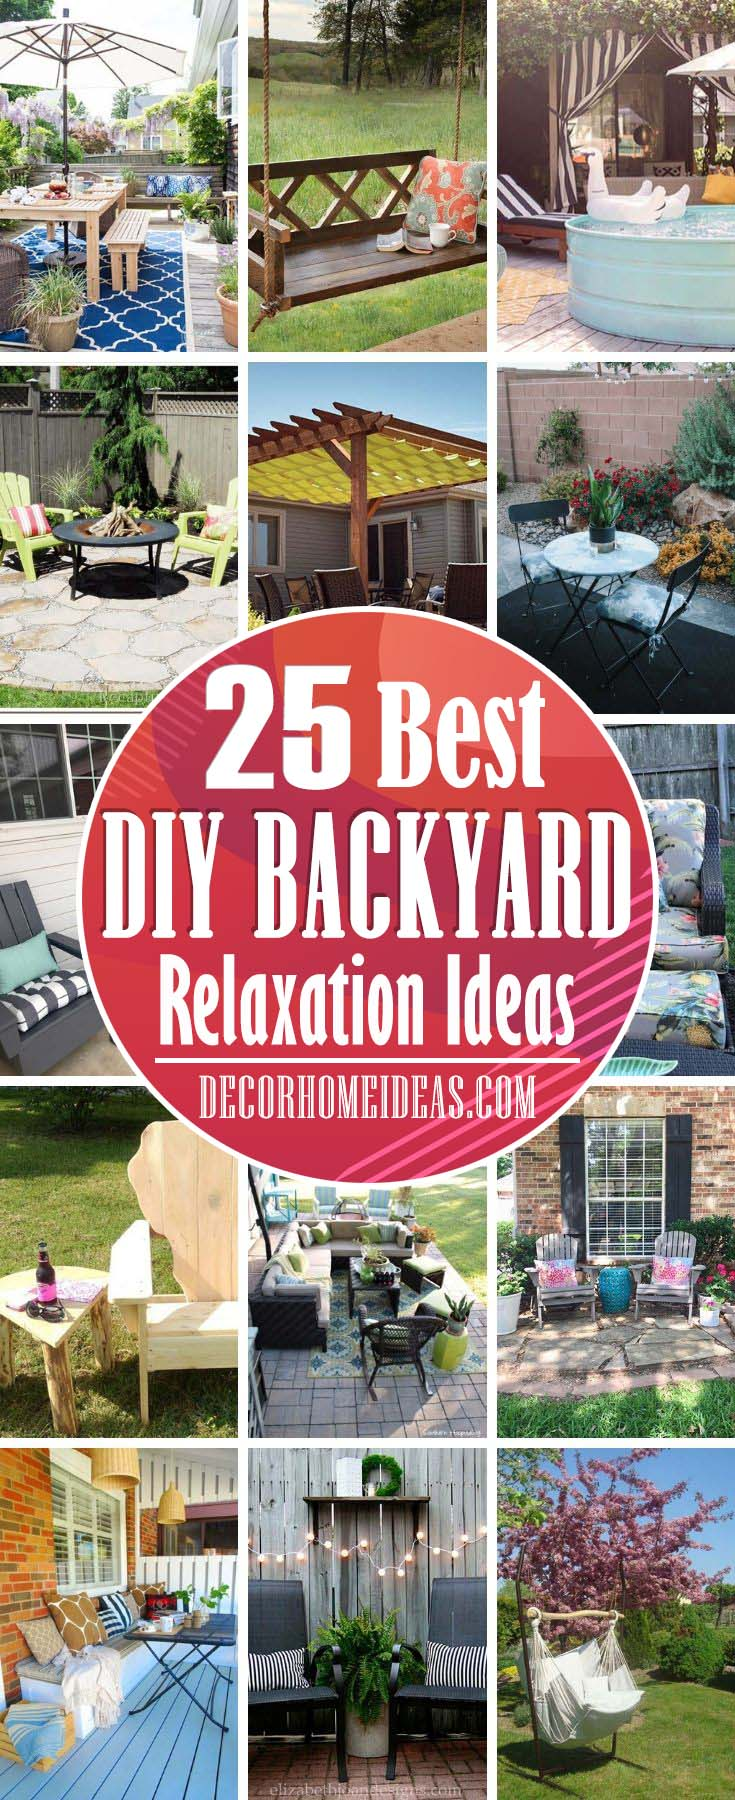 Best DIY Backyard Relaxation Ideas To Enjoy All Summer. Get some inspiration with these DIY backyard project ideas that will make your summer days more fun and enjoyable. #diy #backyard #projects #decorhomeideas